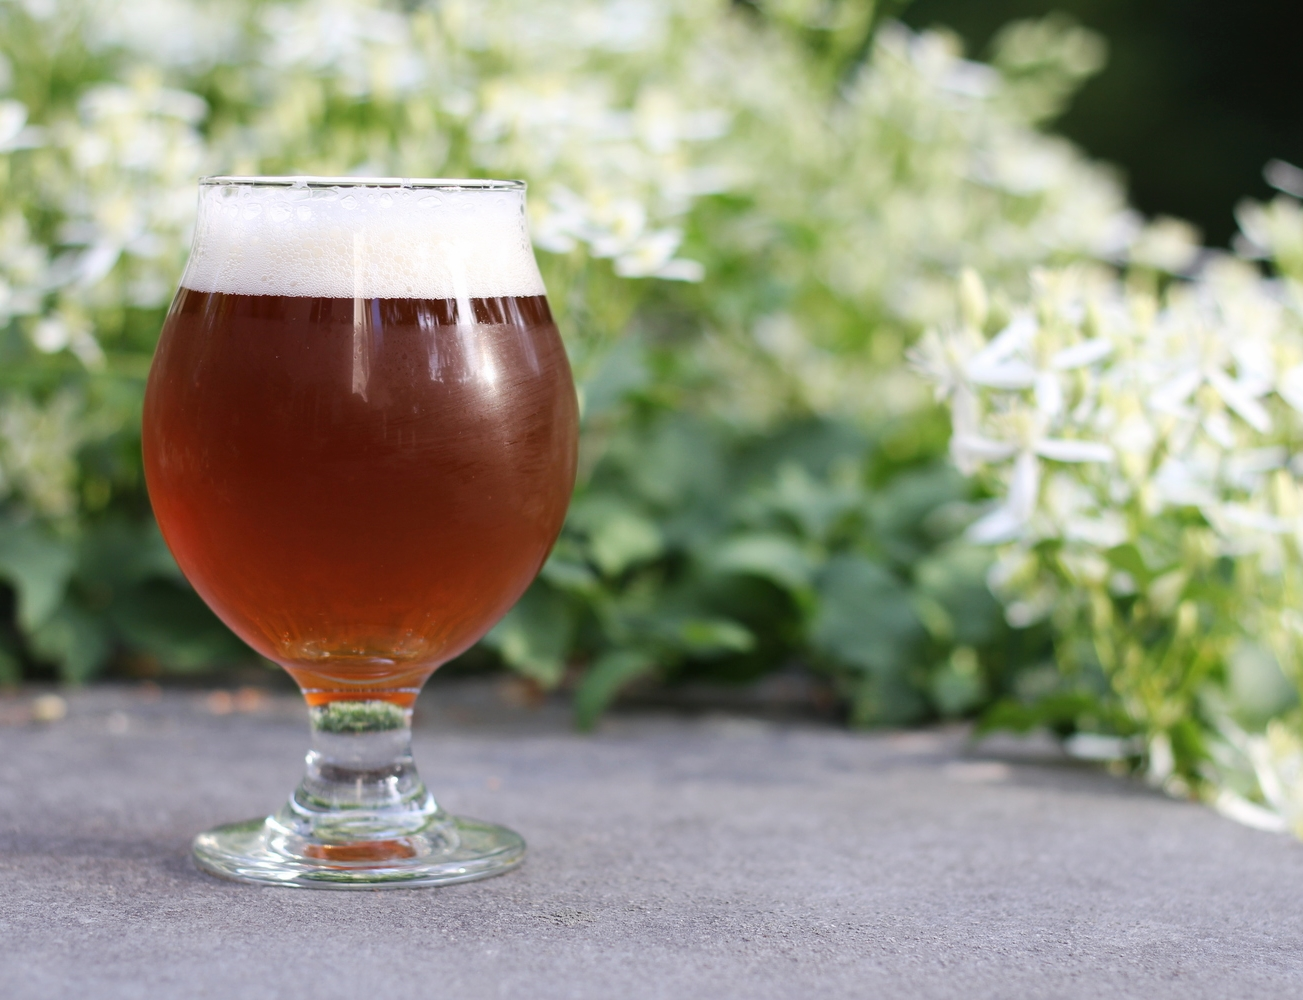 {Estabrook Brewing Co.'s latest brew: India Pale Ale}